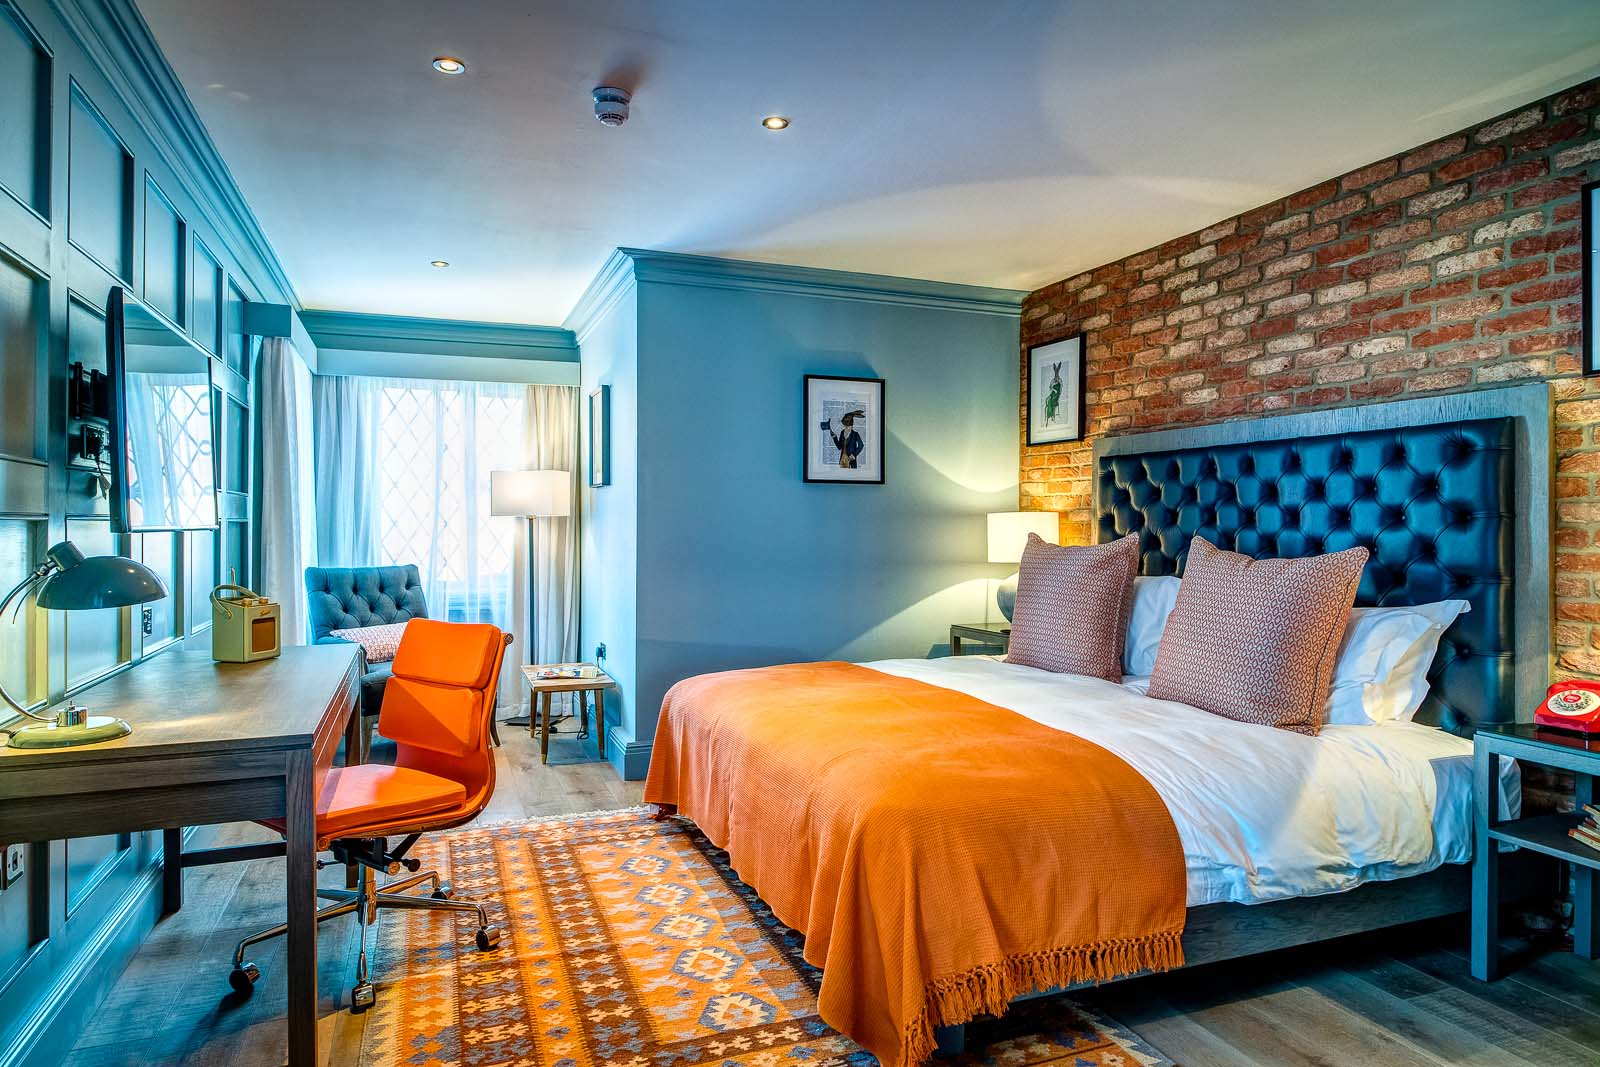 Newly Refurbished The Great House At Sonning Set To Launch